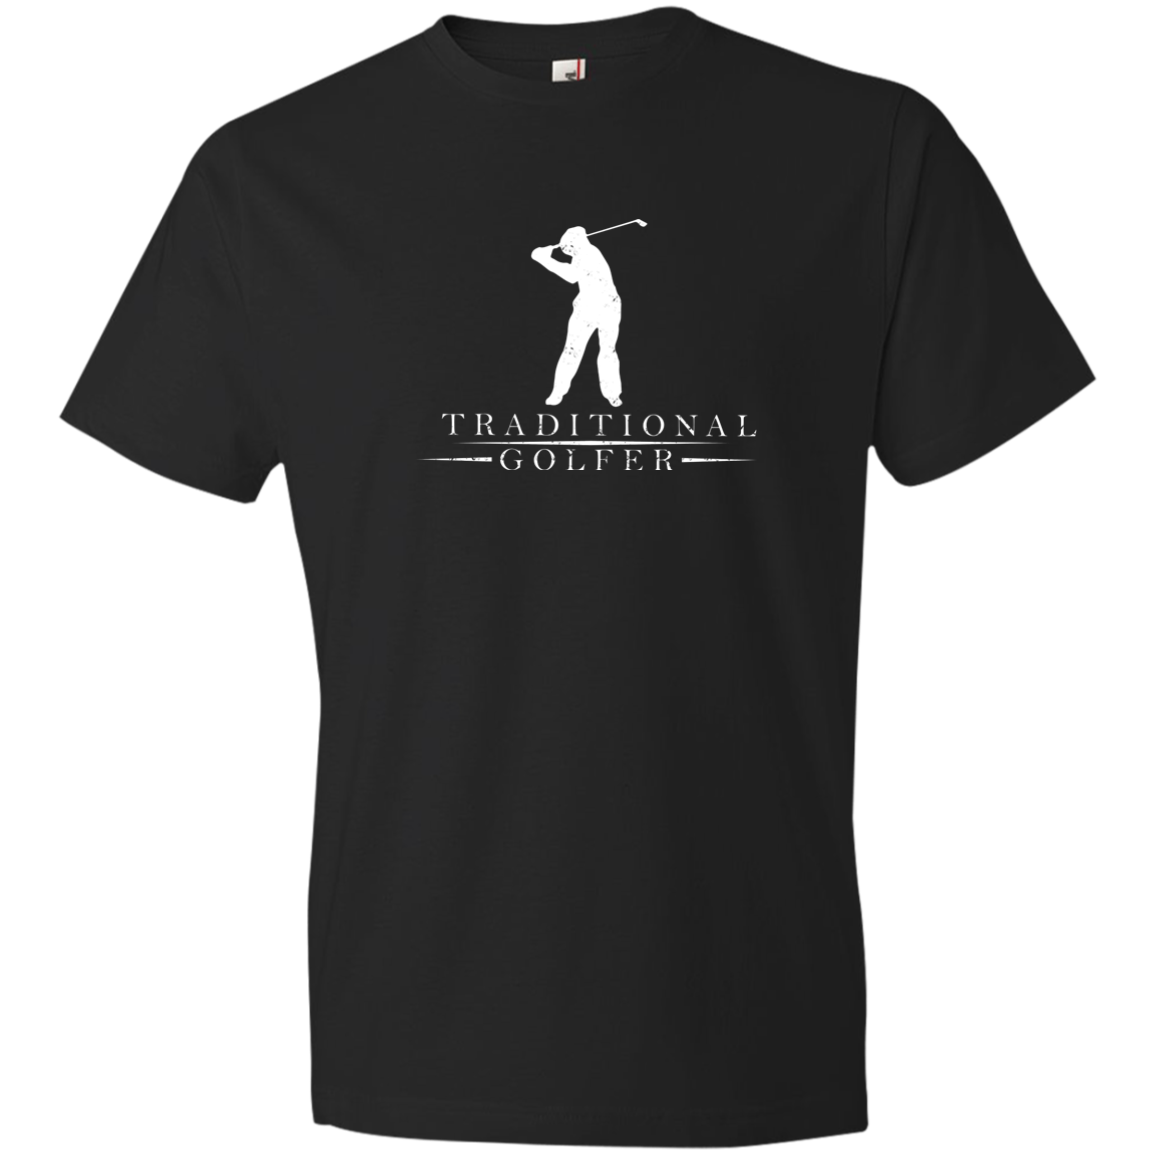 Traditional Golfer T-Shirt